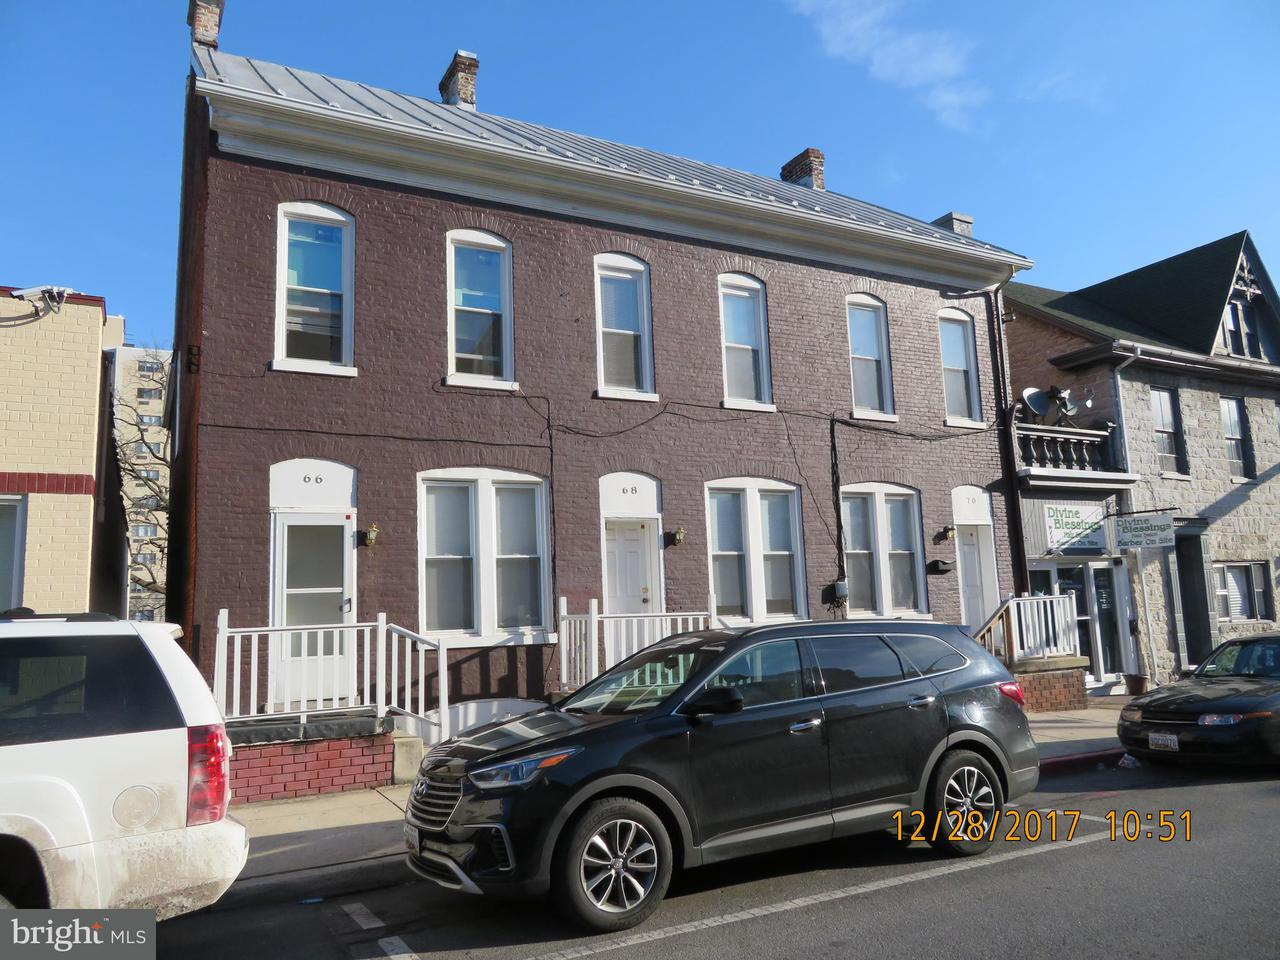 Other Residential for Sale at 66 Antietam St Hagerstown, Maryland 21740 United States